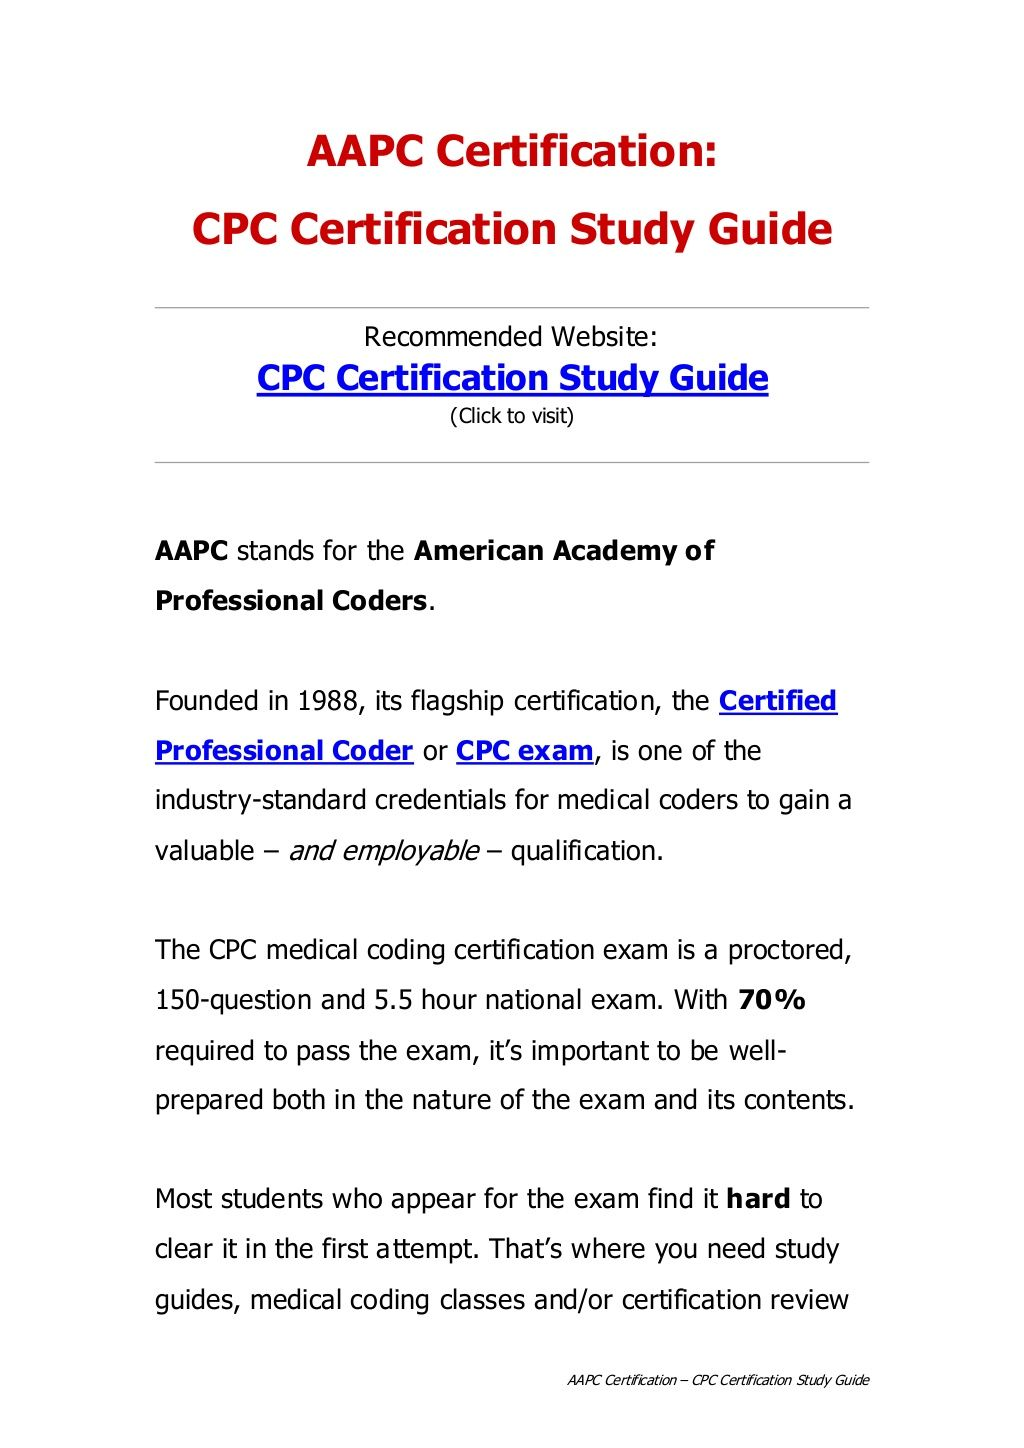 aapc-certification-cpc-certification-study-guide by Ronnie Newton via  Slideshare